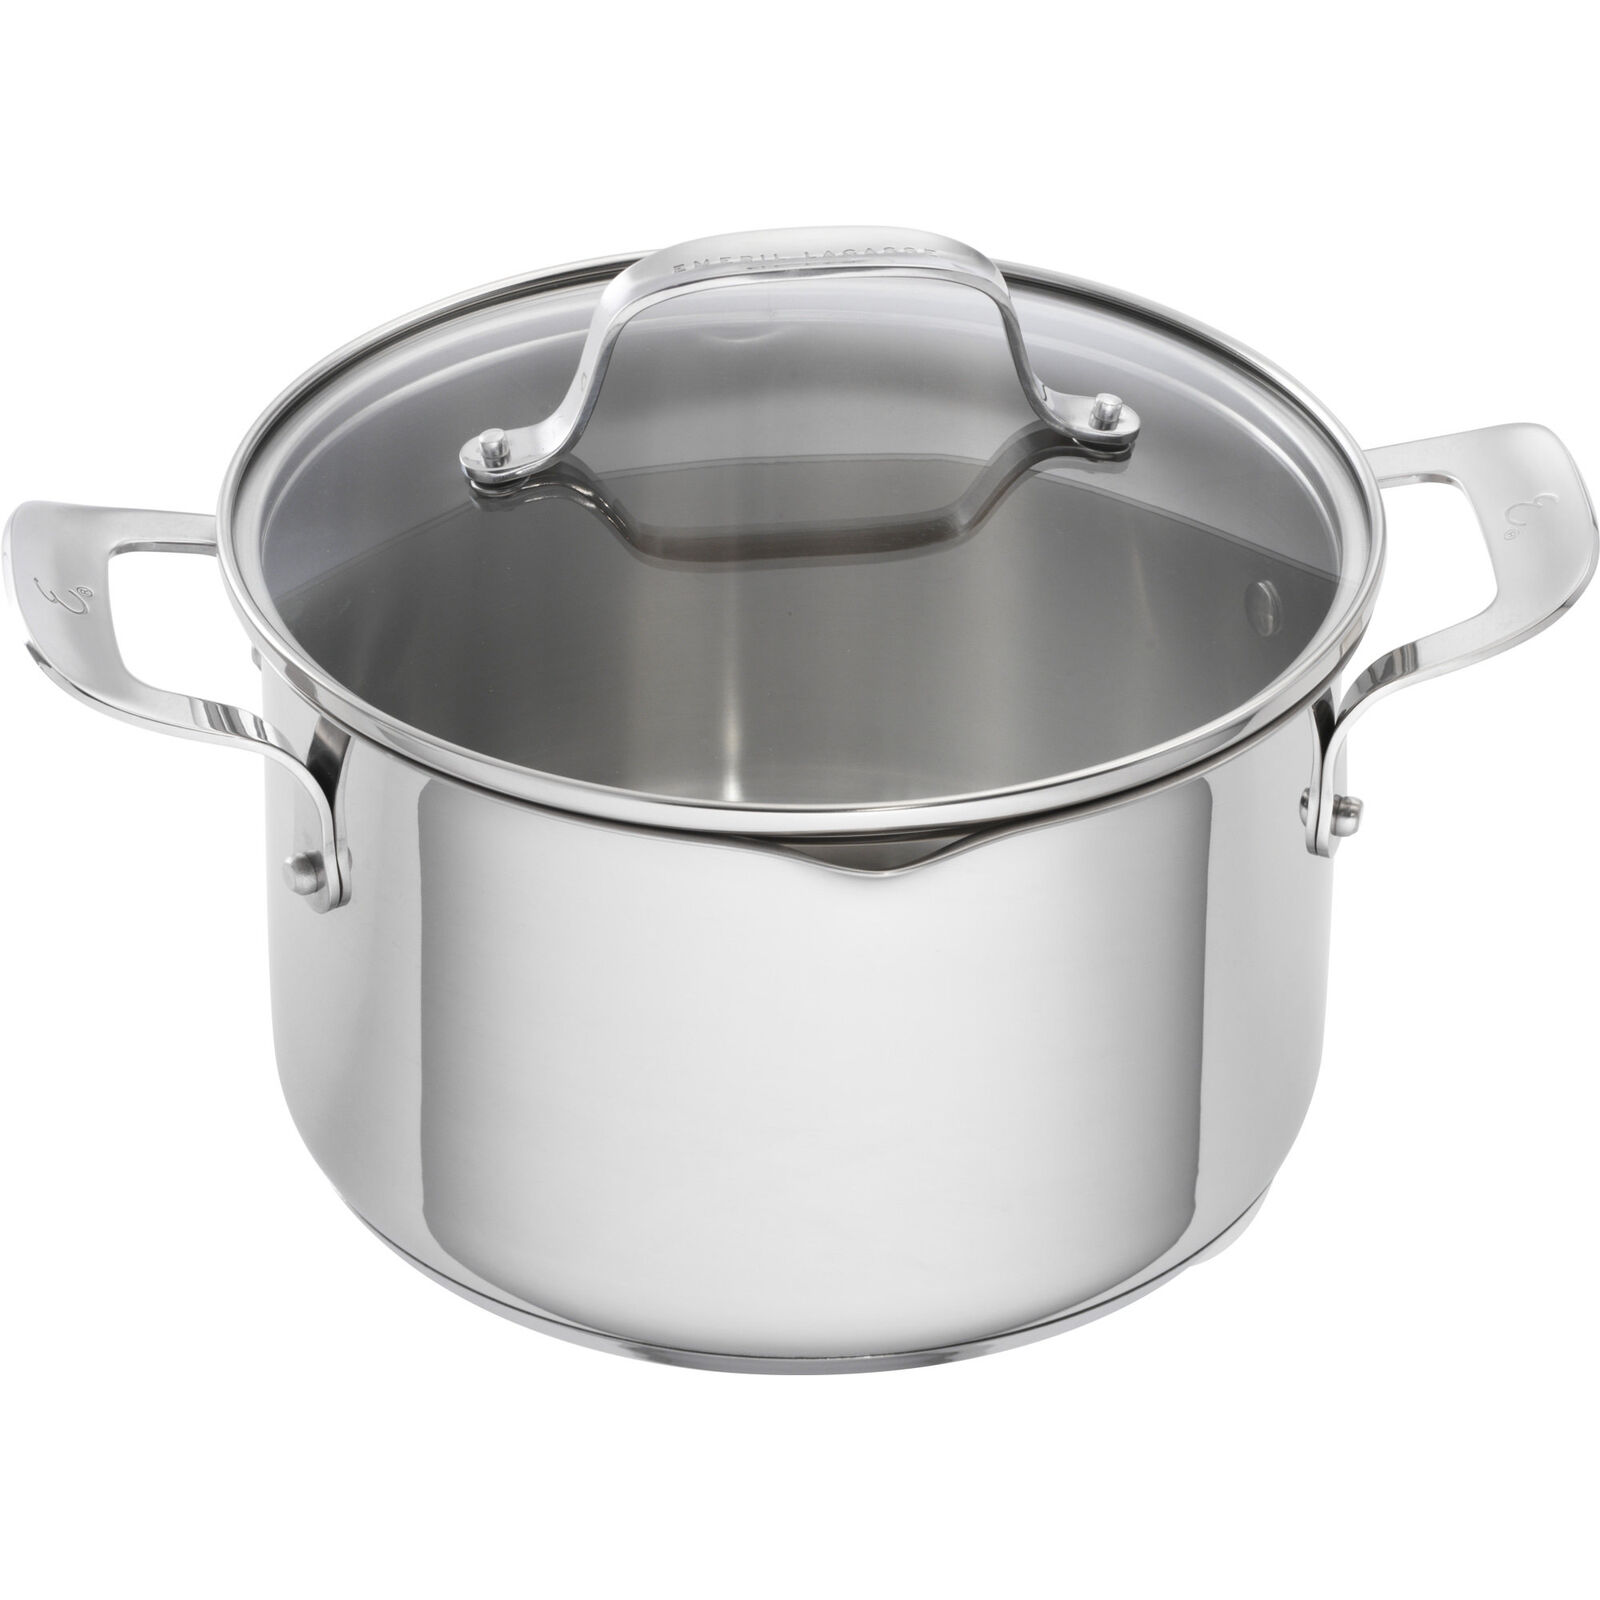 Emeril Lagasse 5 Qt. Stainless Steel Round Dutch Oven Set of 2